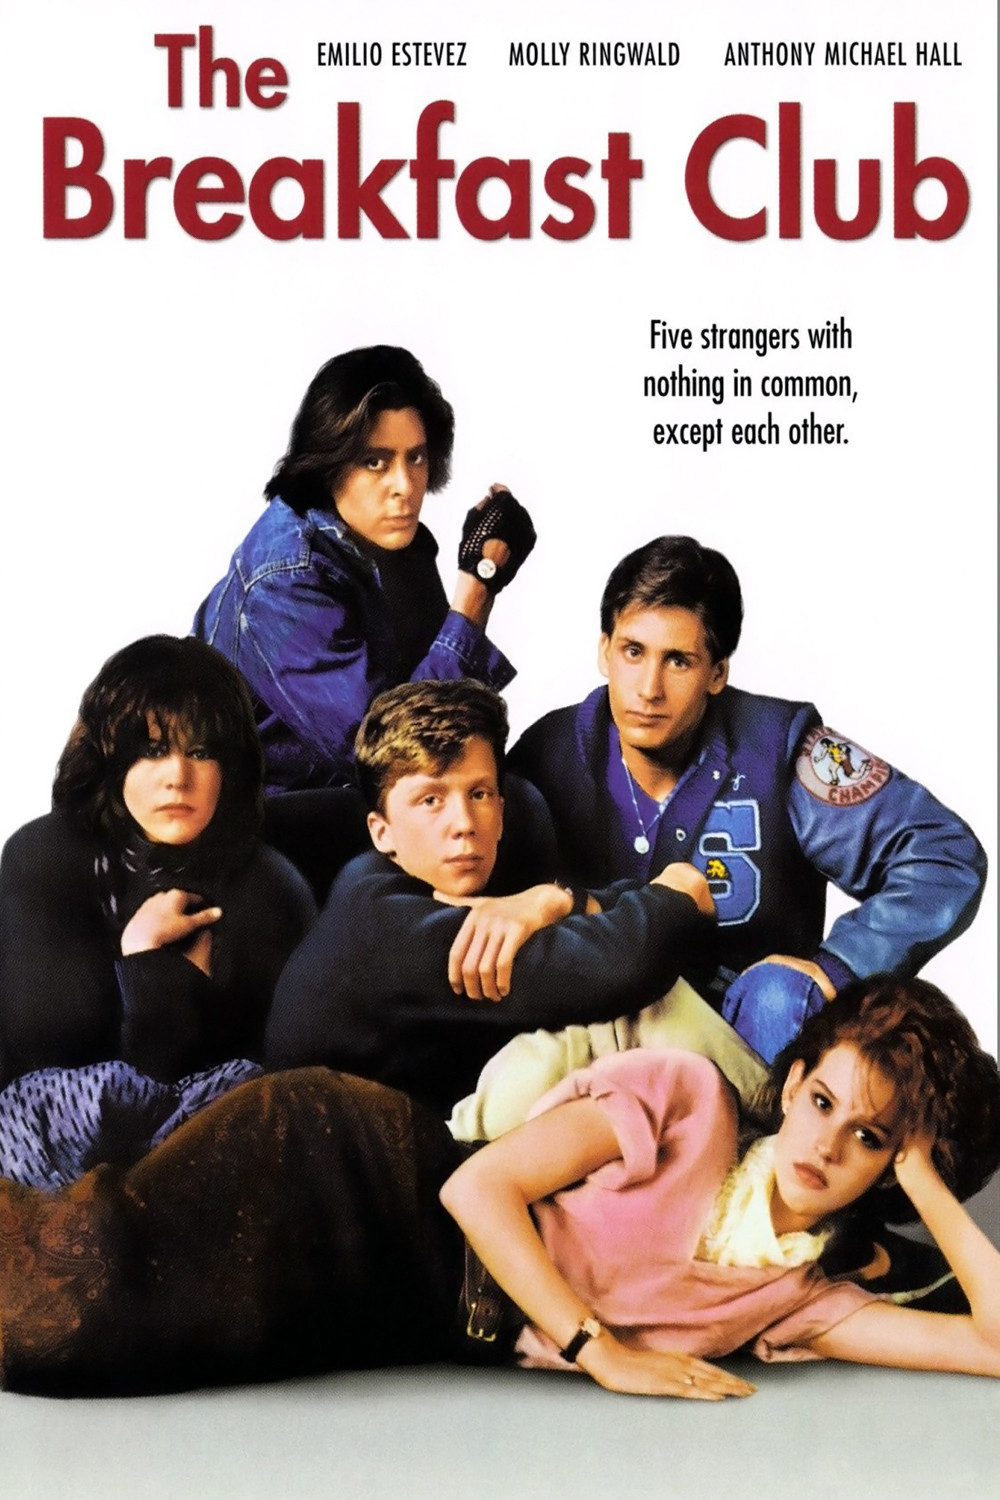 College of Arts & Letters Fall 2018 Film Series - The Breakfast Club